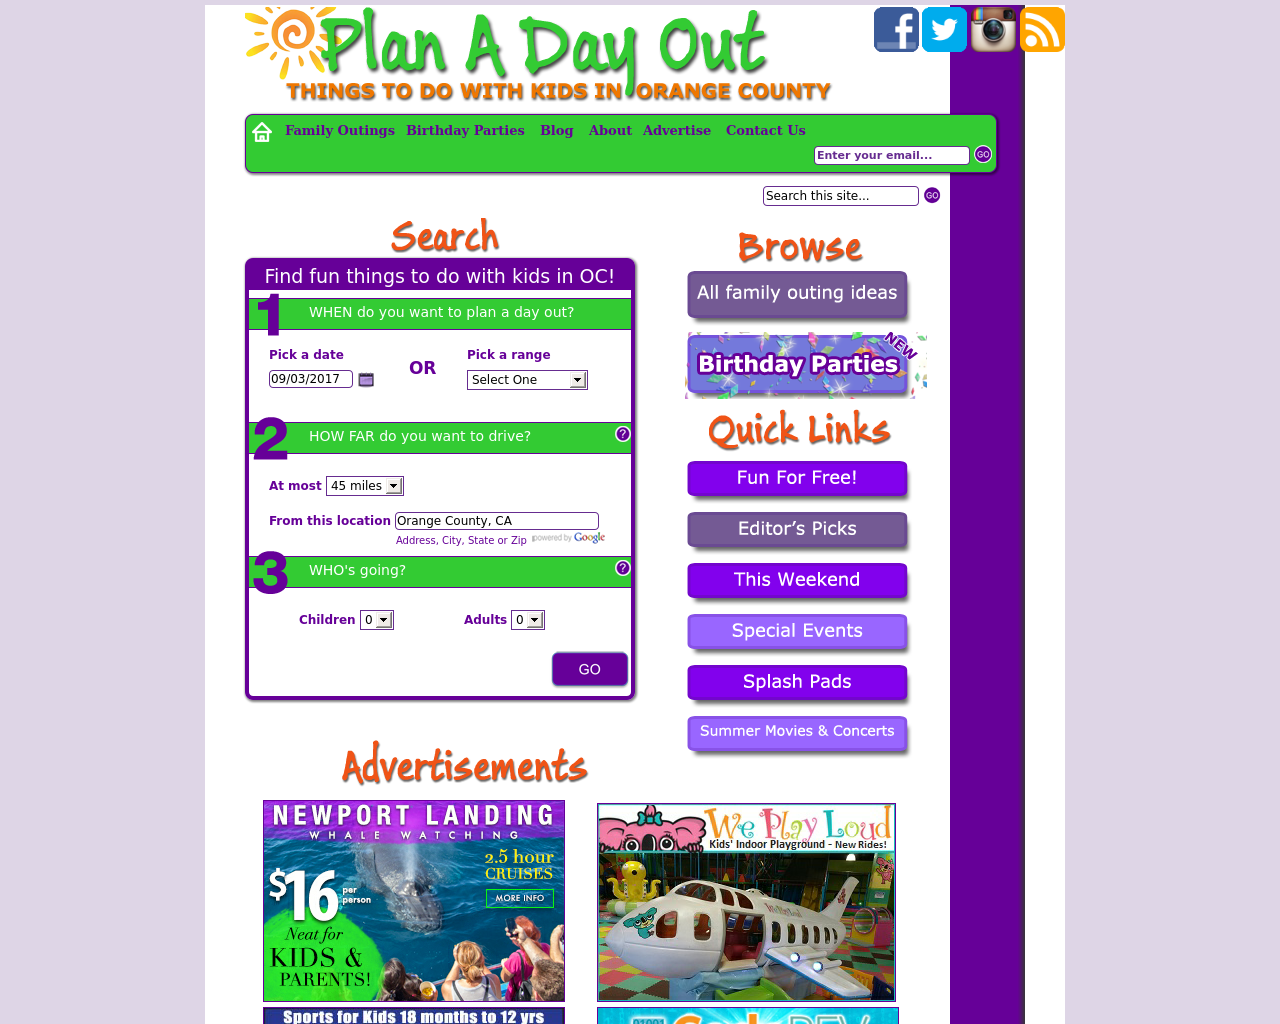 Plan-A-Day-Out-Advertising-Reviews-Pricing